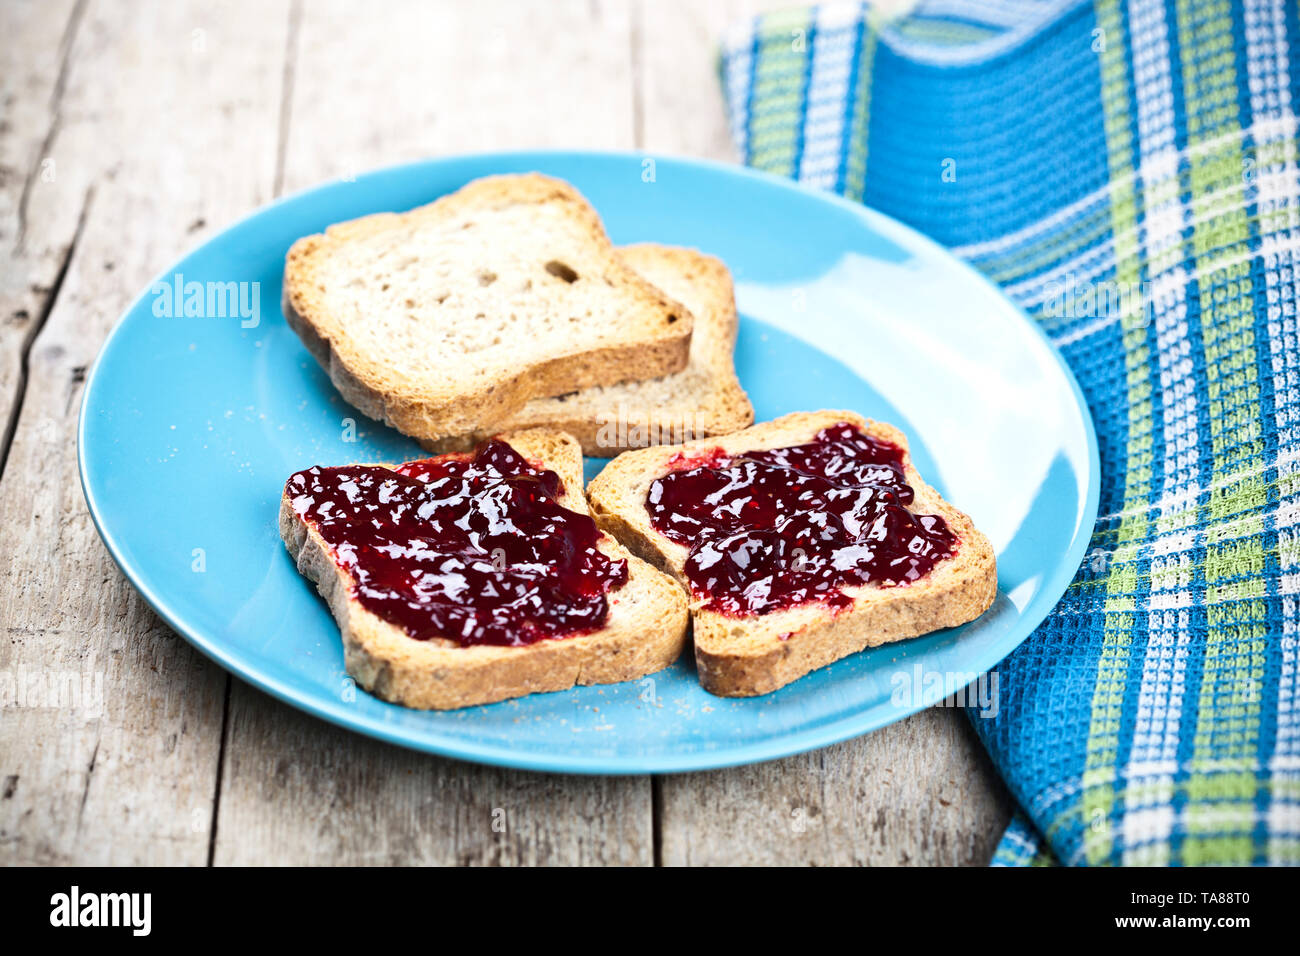 Fresh toasted cereal bread slices with homemade wild berries jam and linen napkin on blue ceramic plate closeup on rustic wooden background. Sweet foo - Stock Image